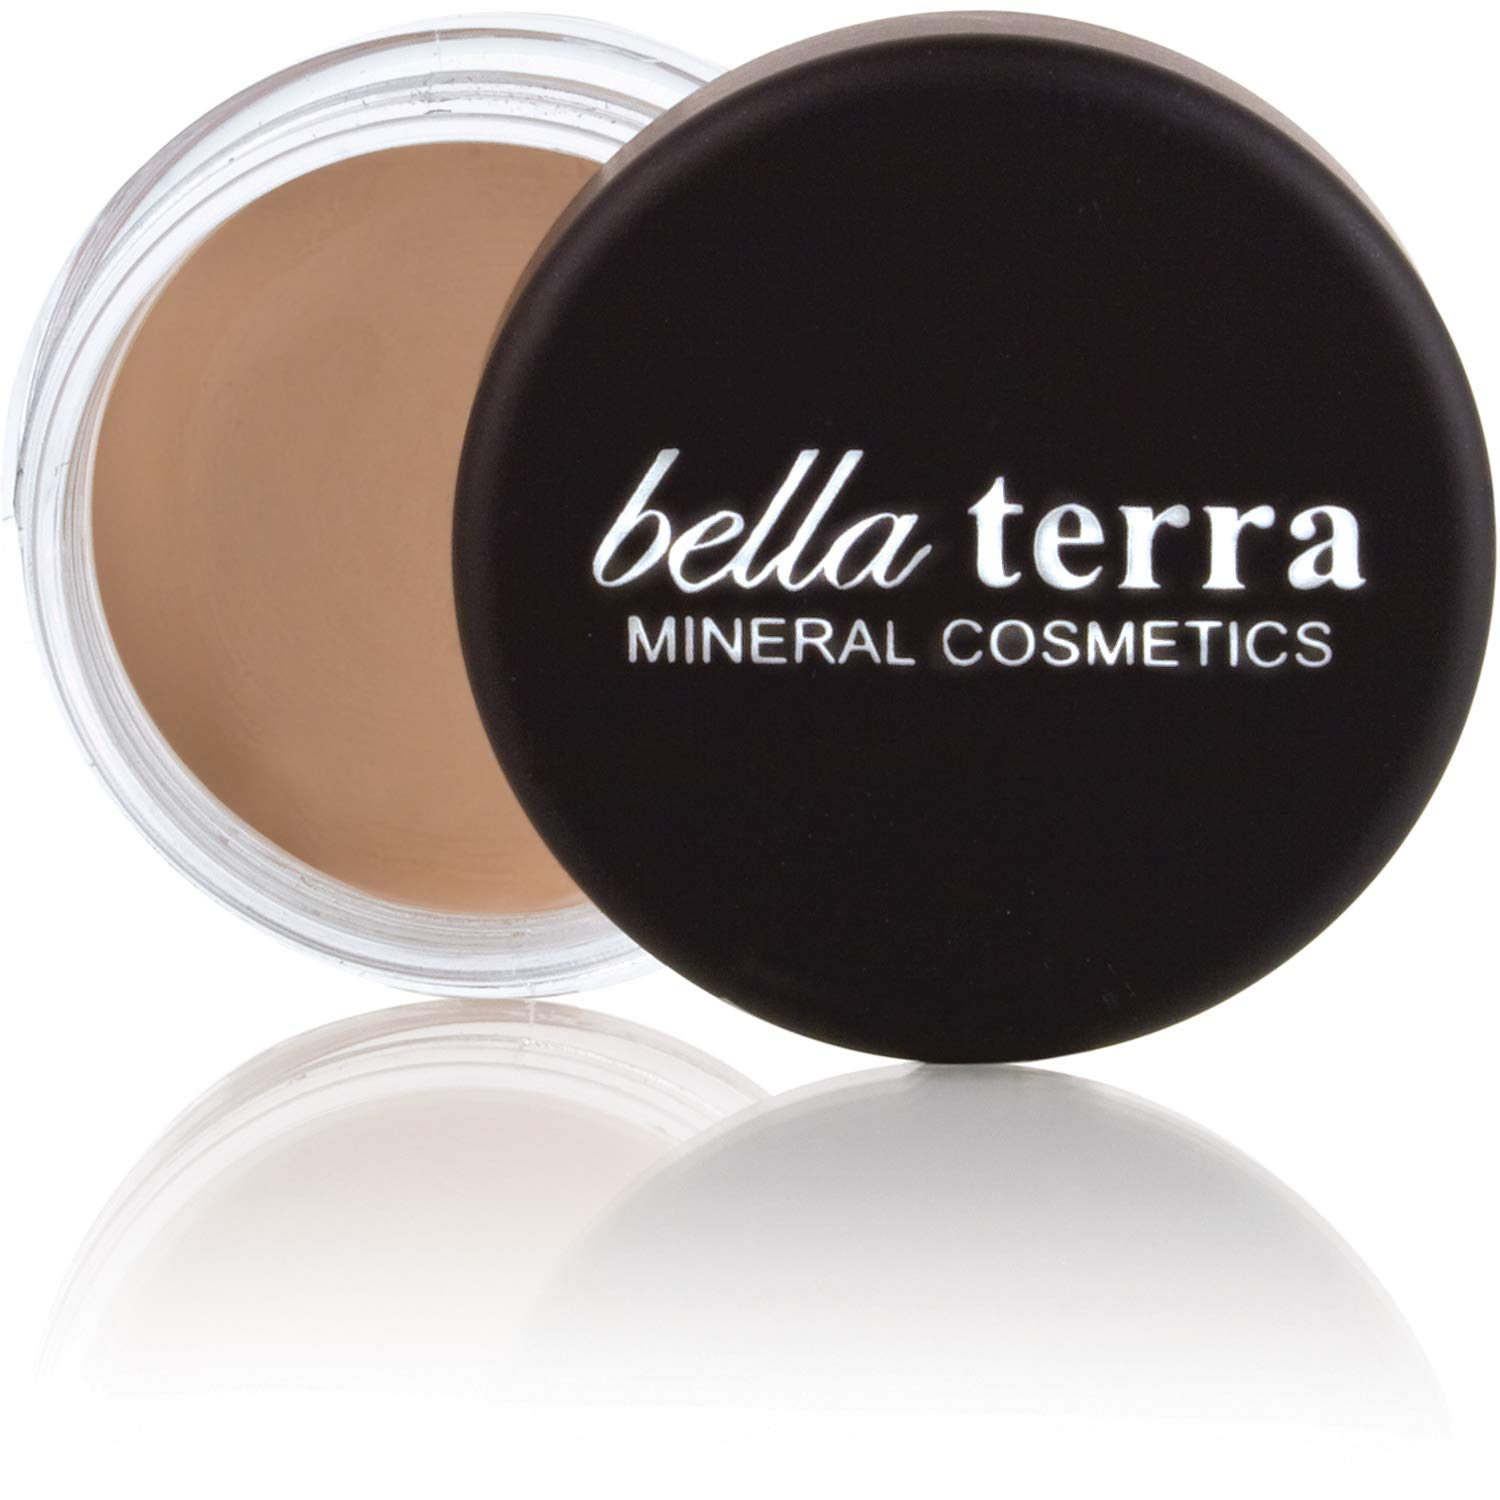 Eye Shadow Primer by Bellaterra